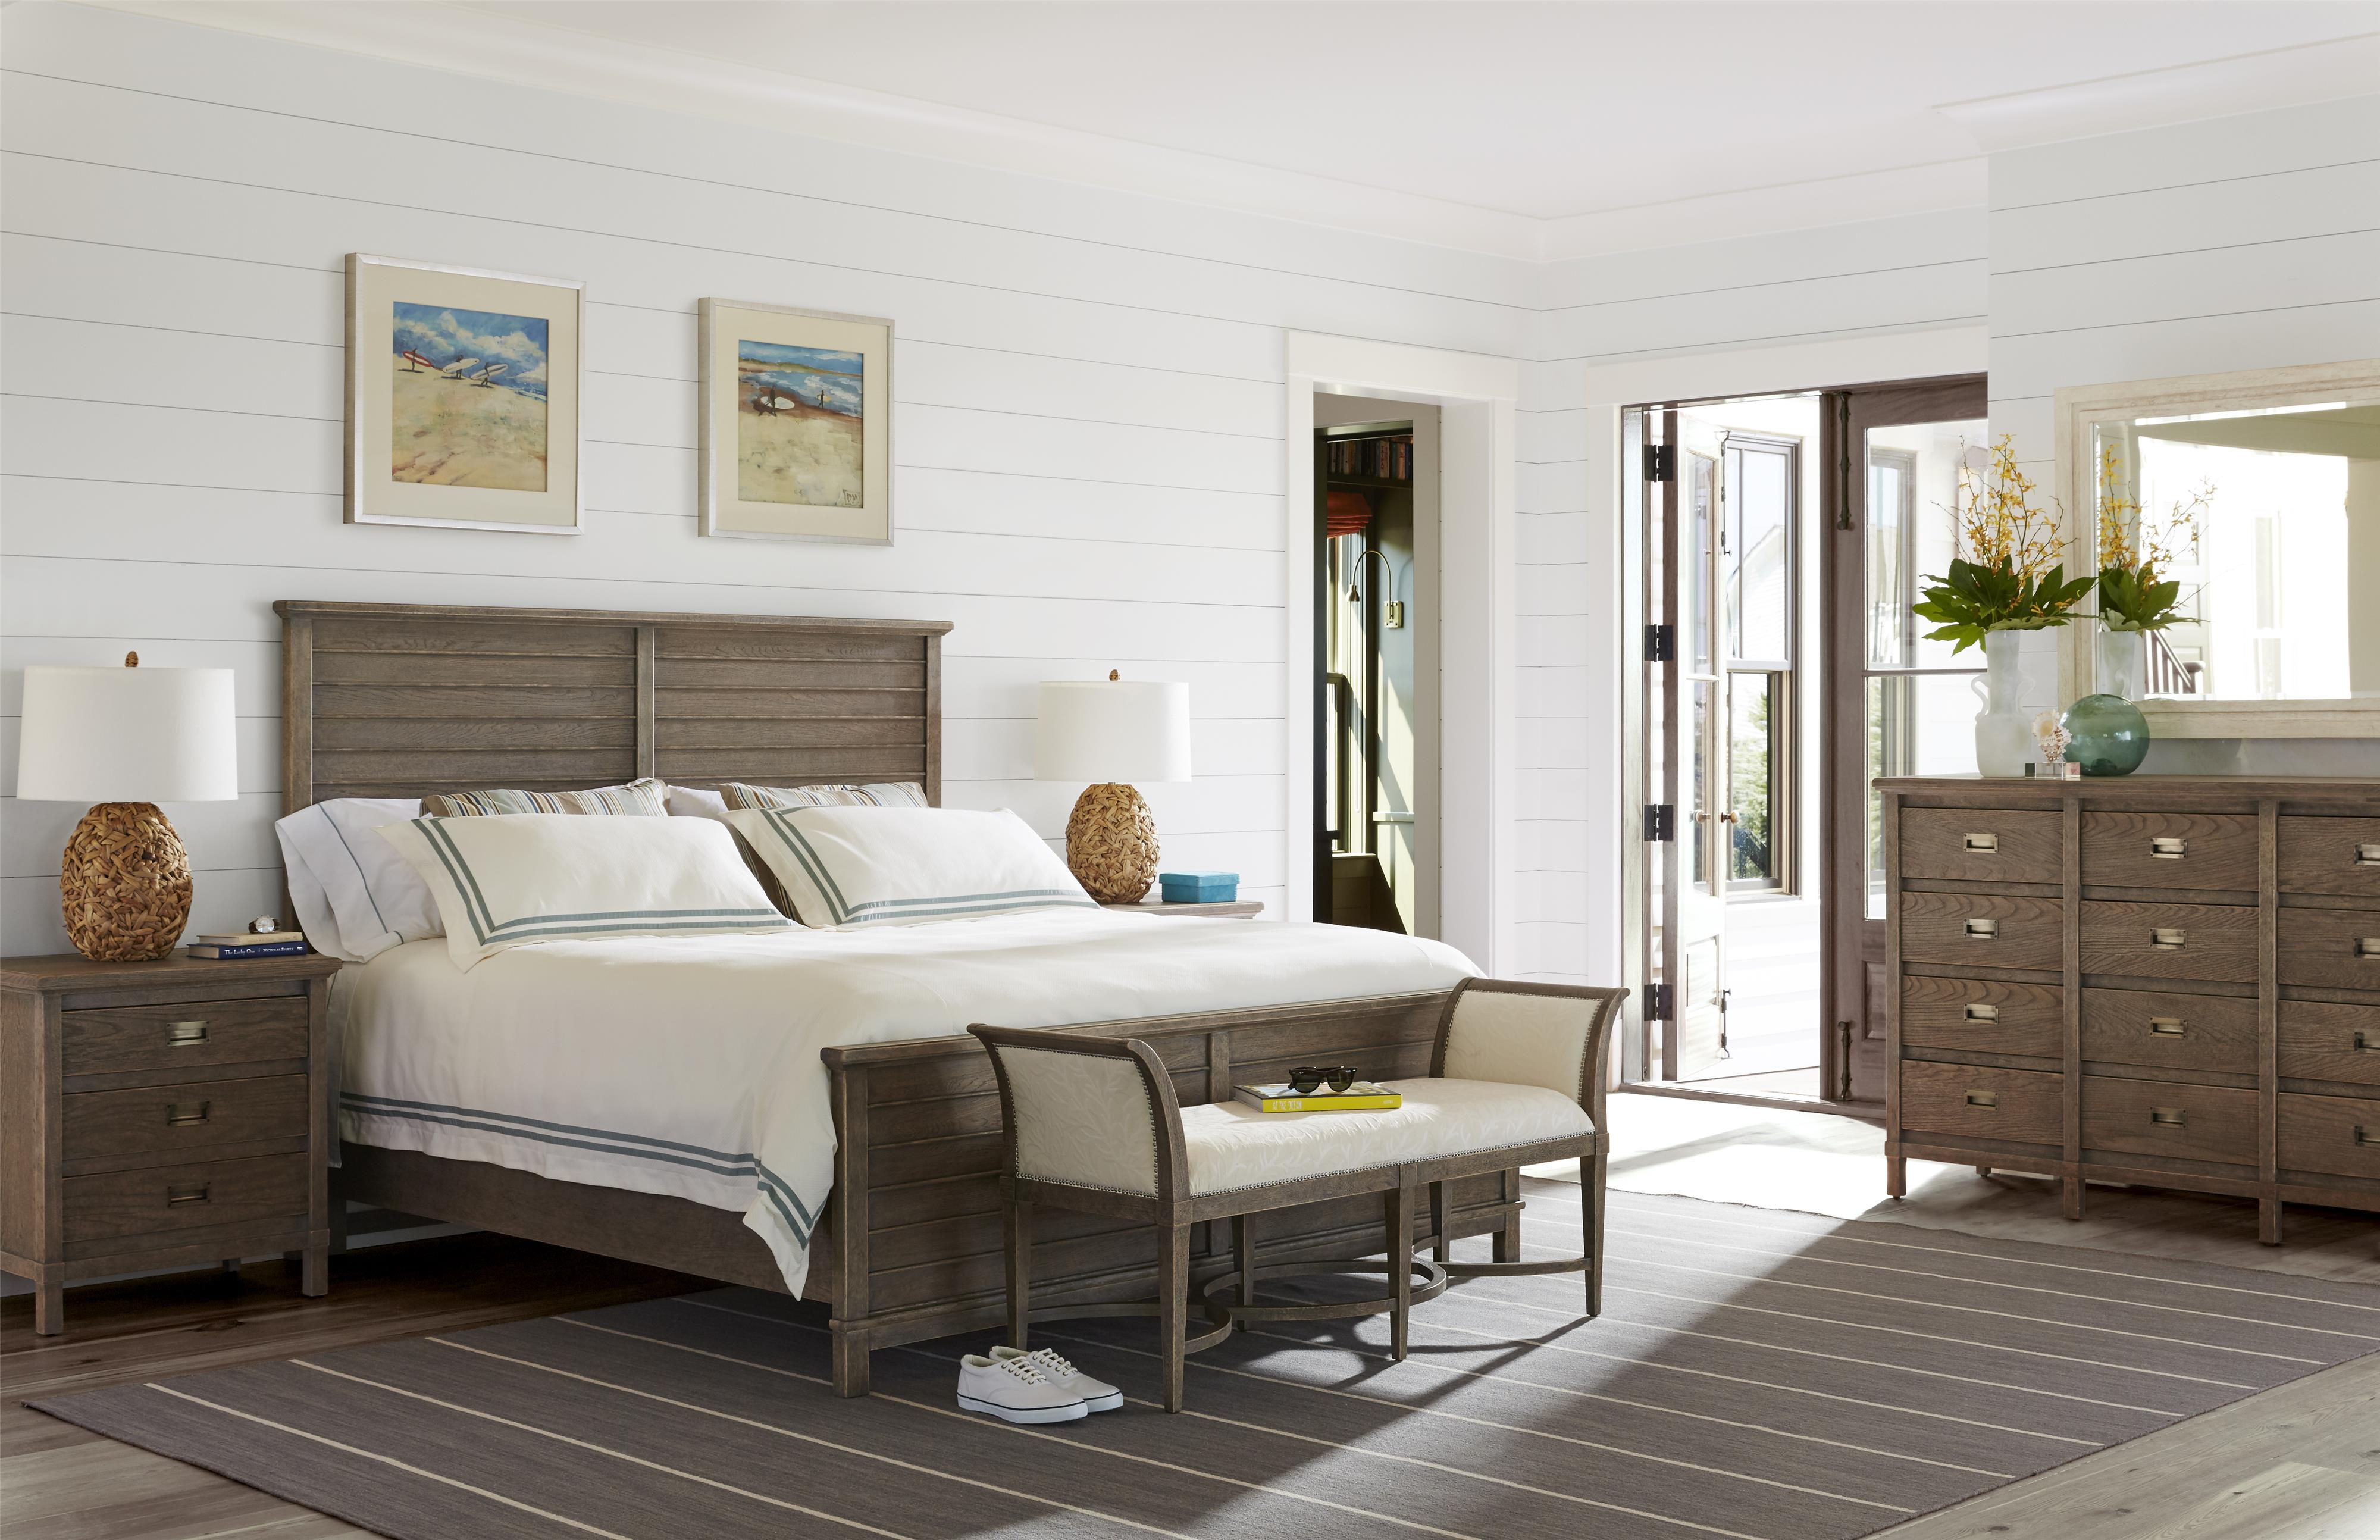 Stanley Furniture Coastal Living Resort King Bedroom Group - Item Number: 062-3 K Bedroom Group 1